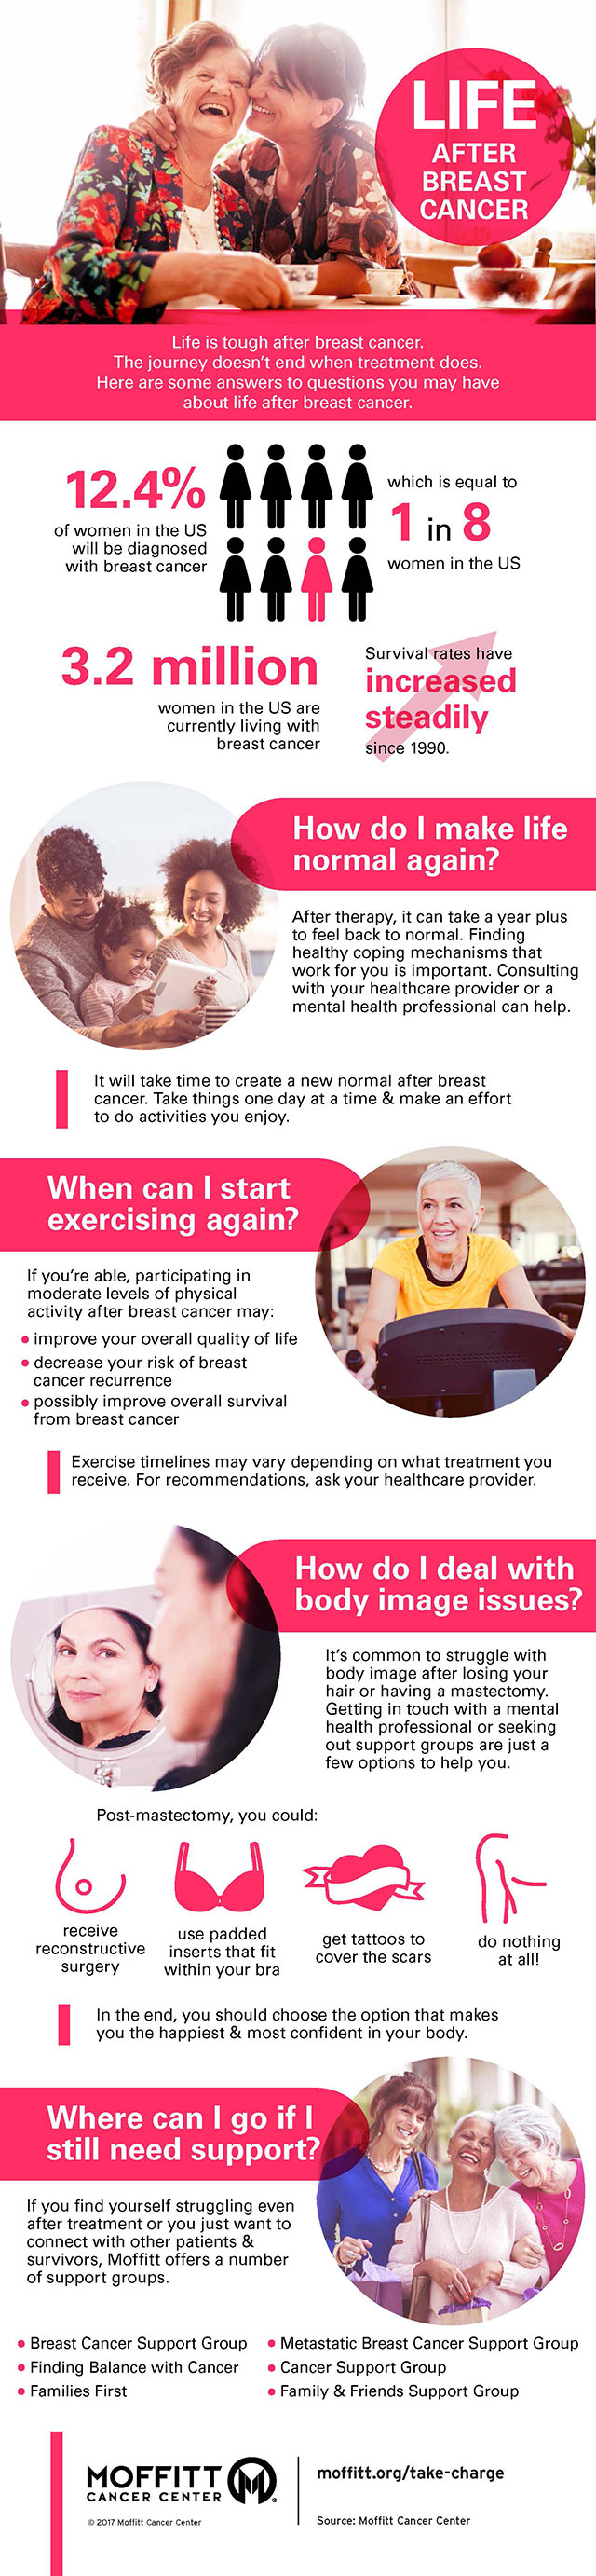 Life After Breast Cancer Infographic